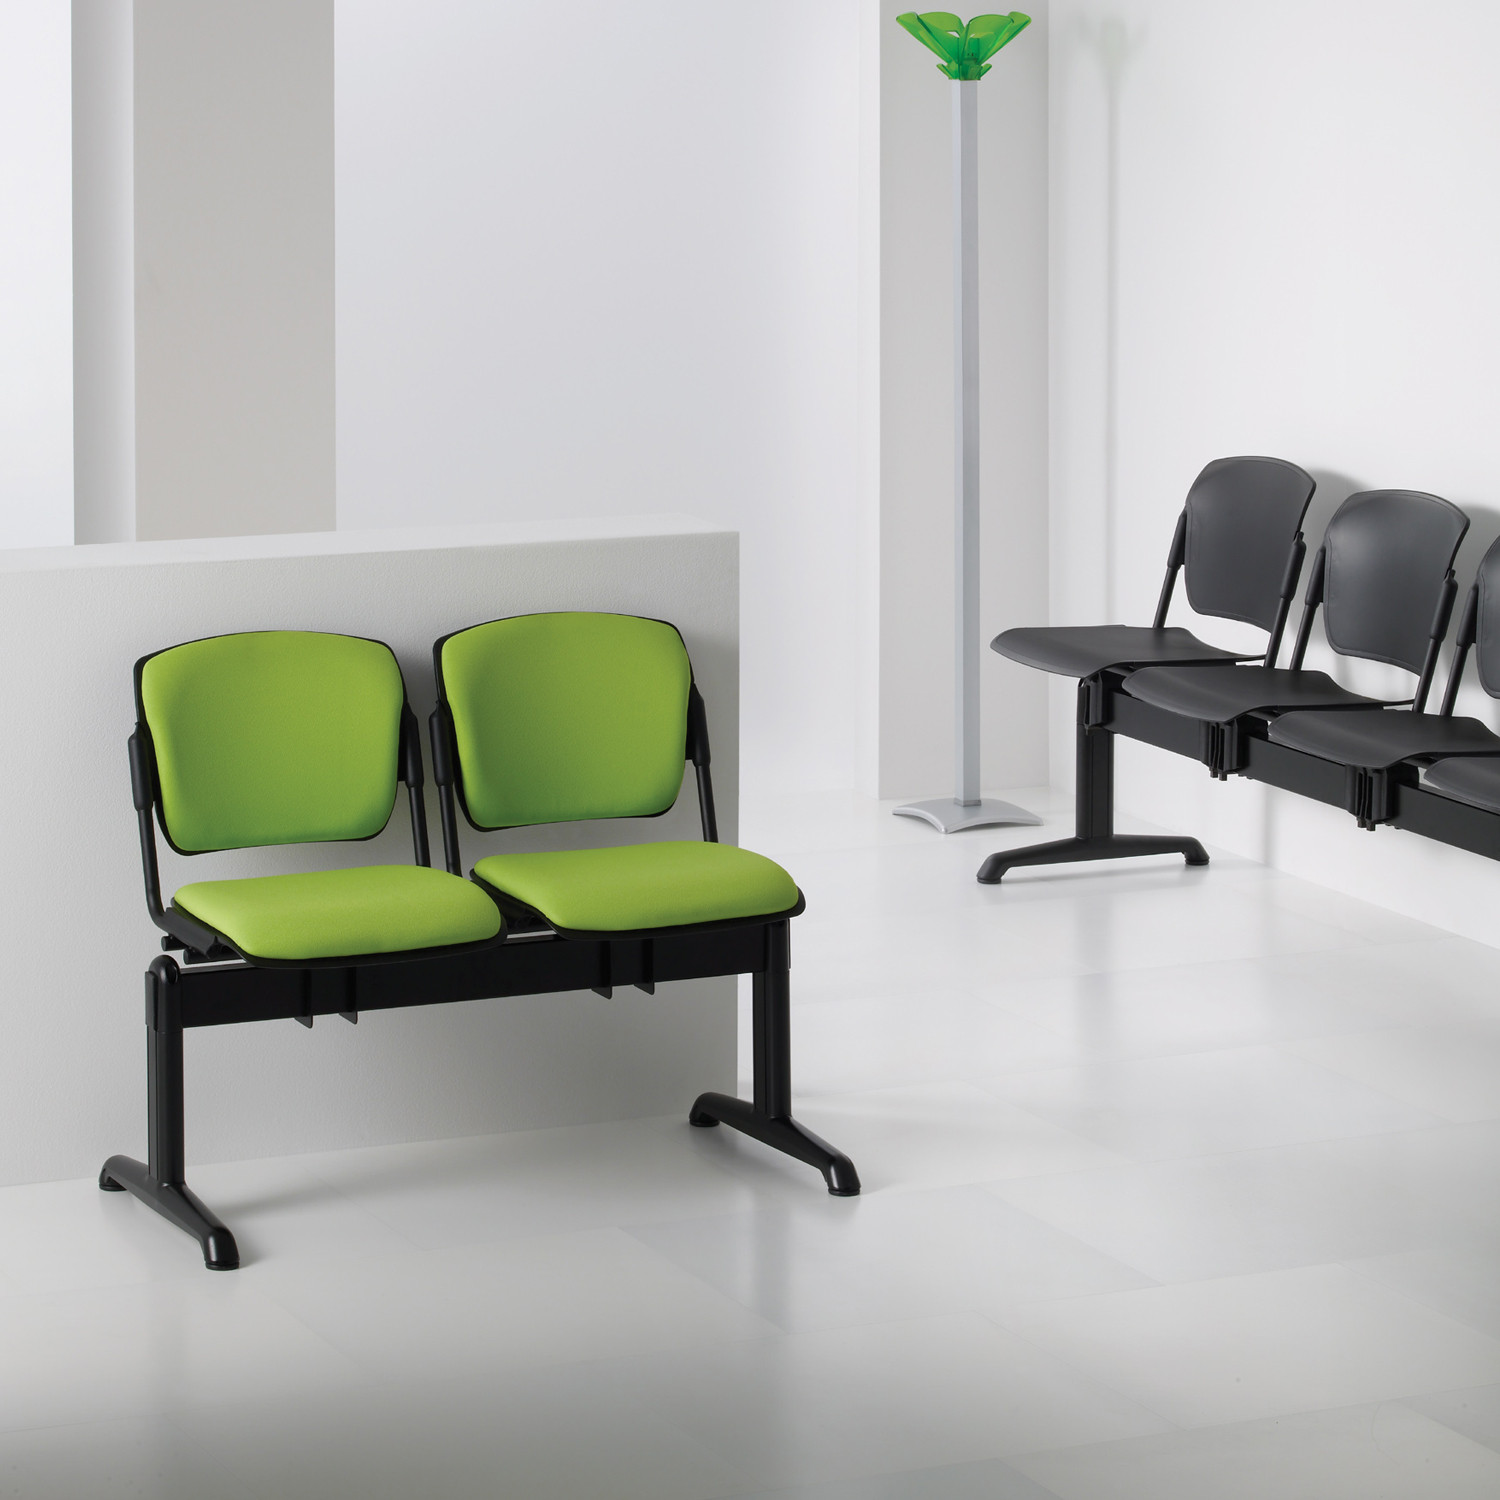 Series 8100 Reception Beam Seating